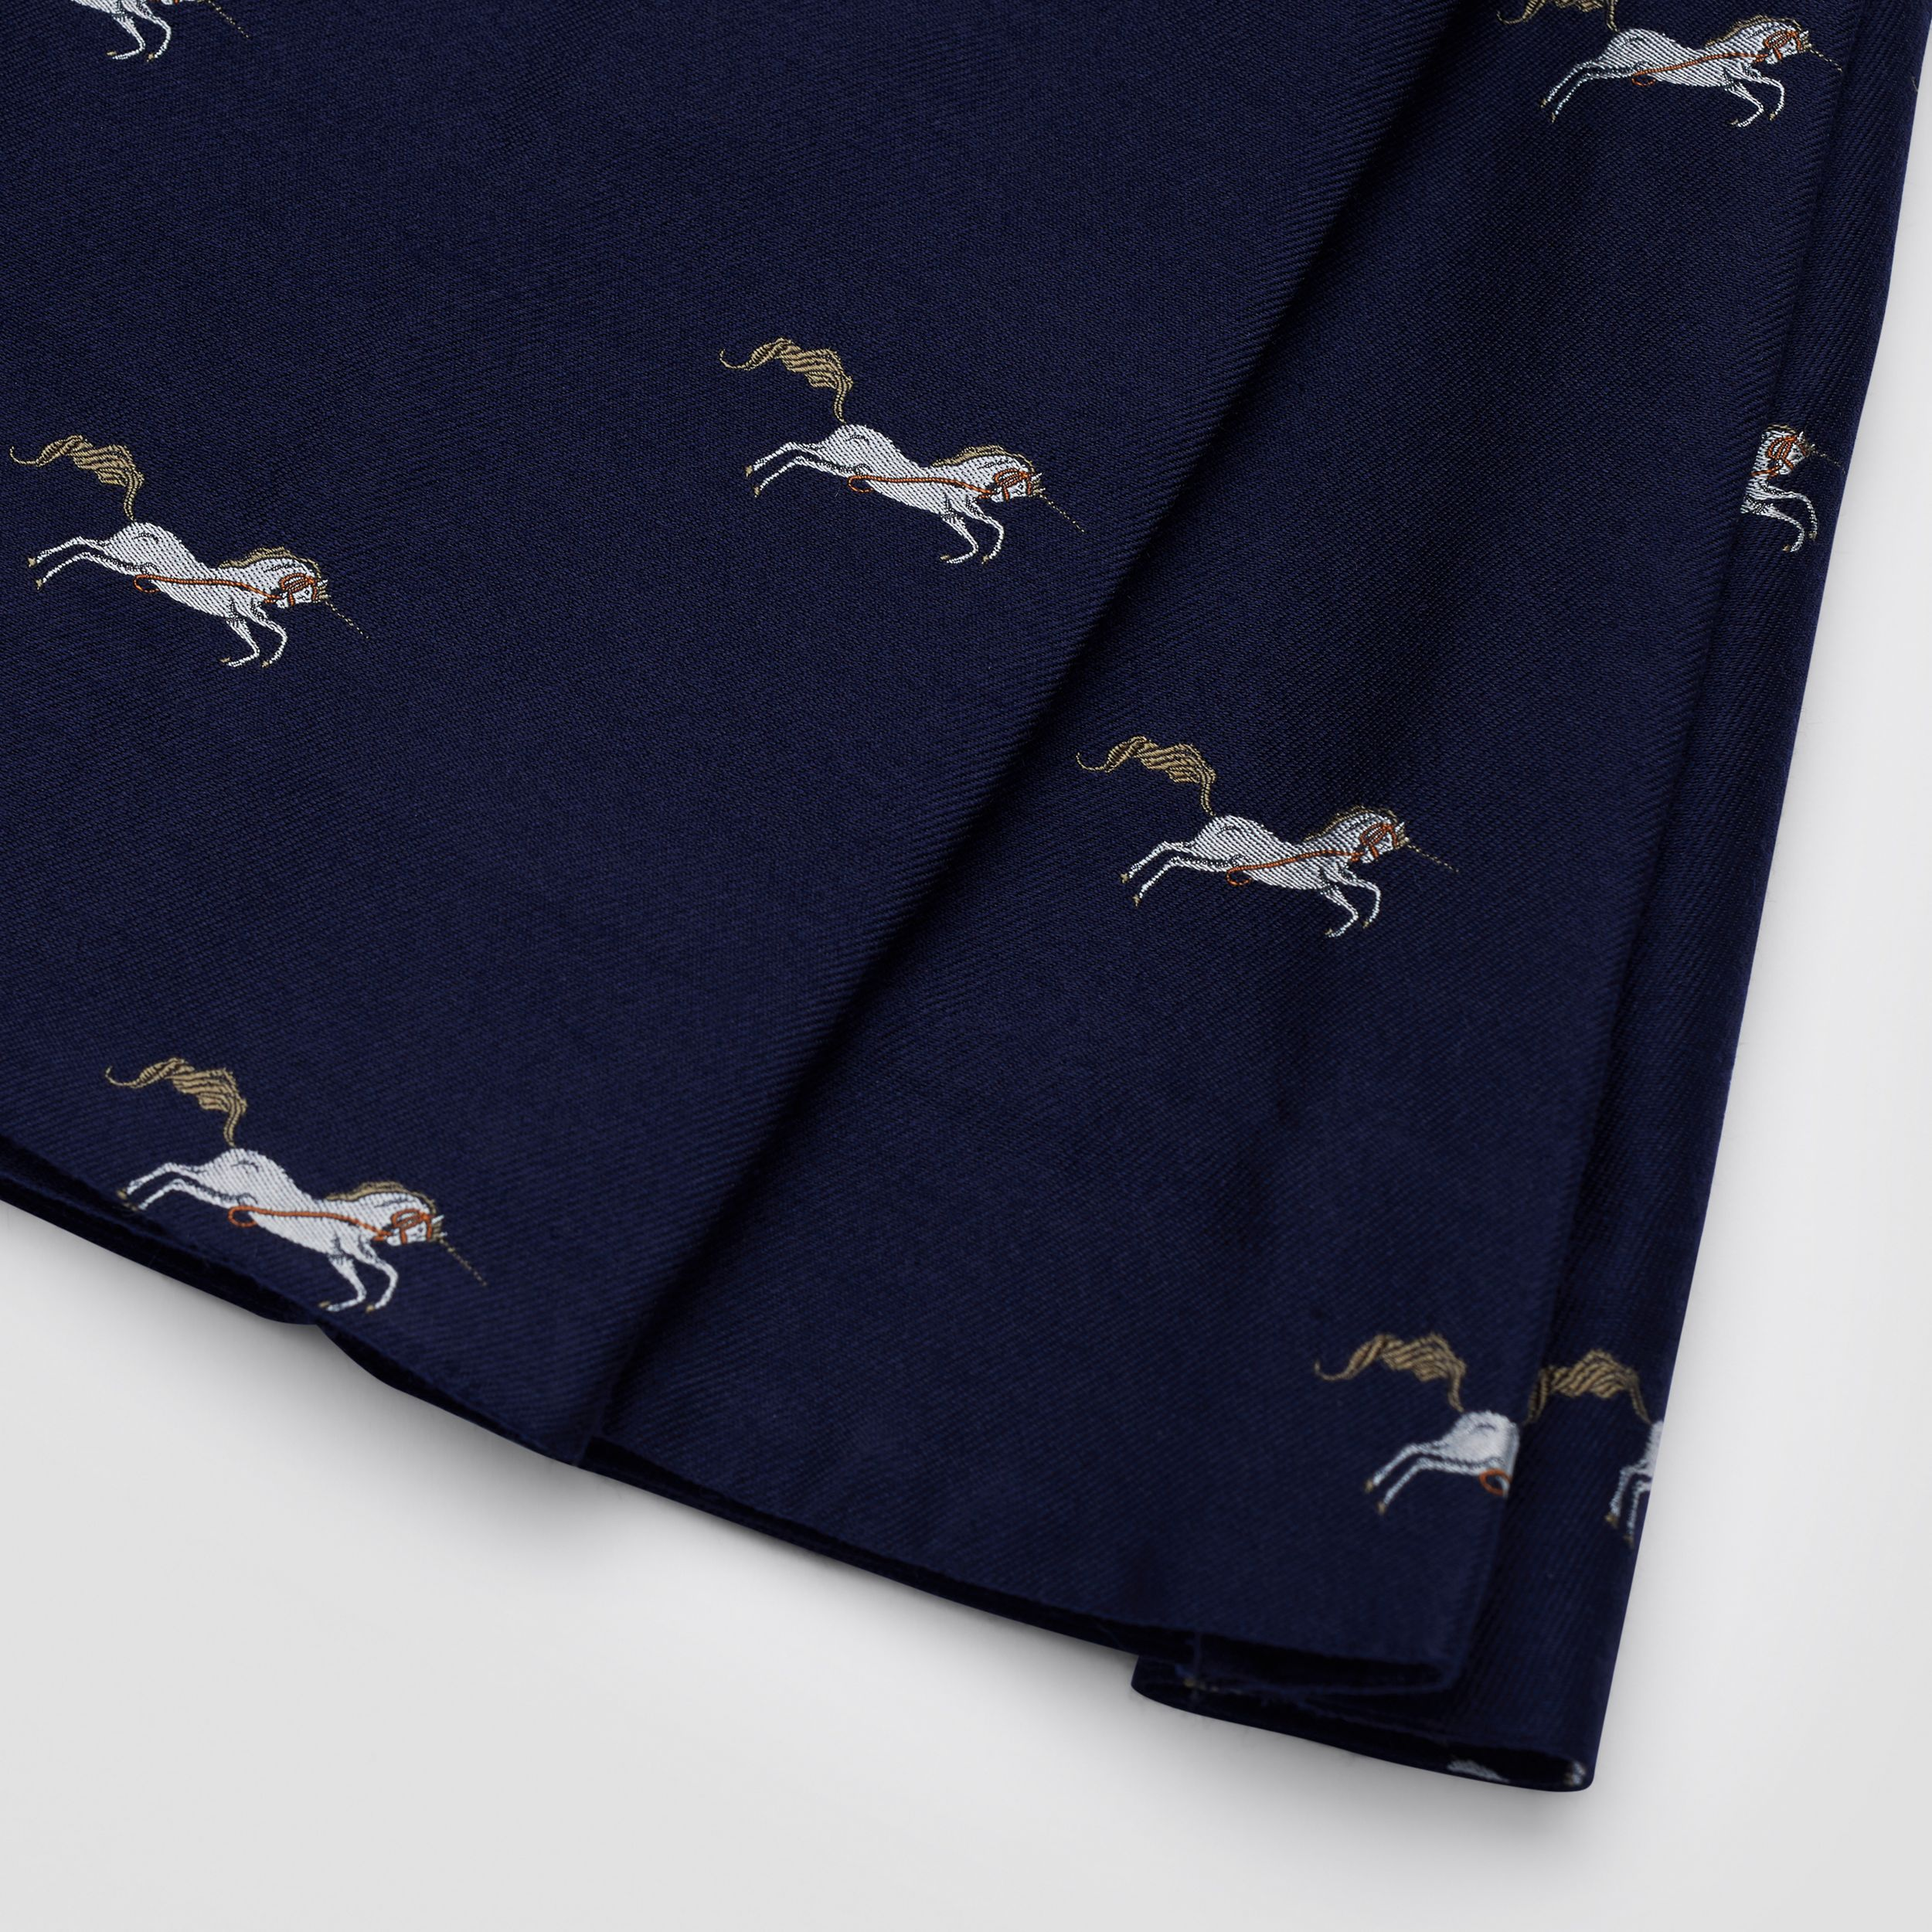 Unicorn Wool Silk Jacquard Pleated Skirt in Navy | Burberry - 2